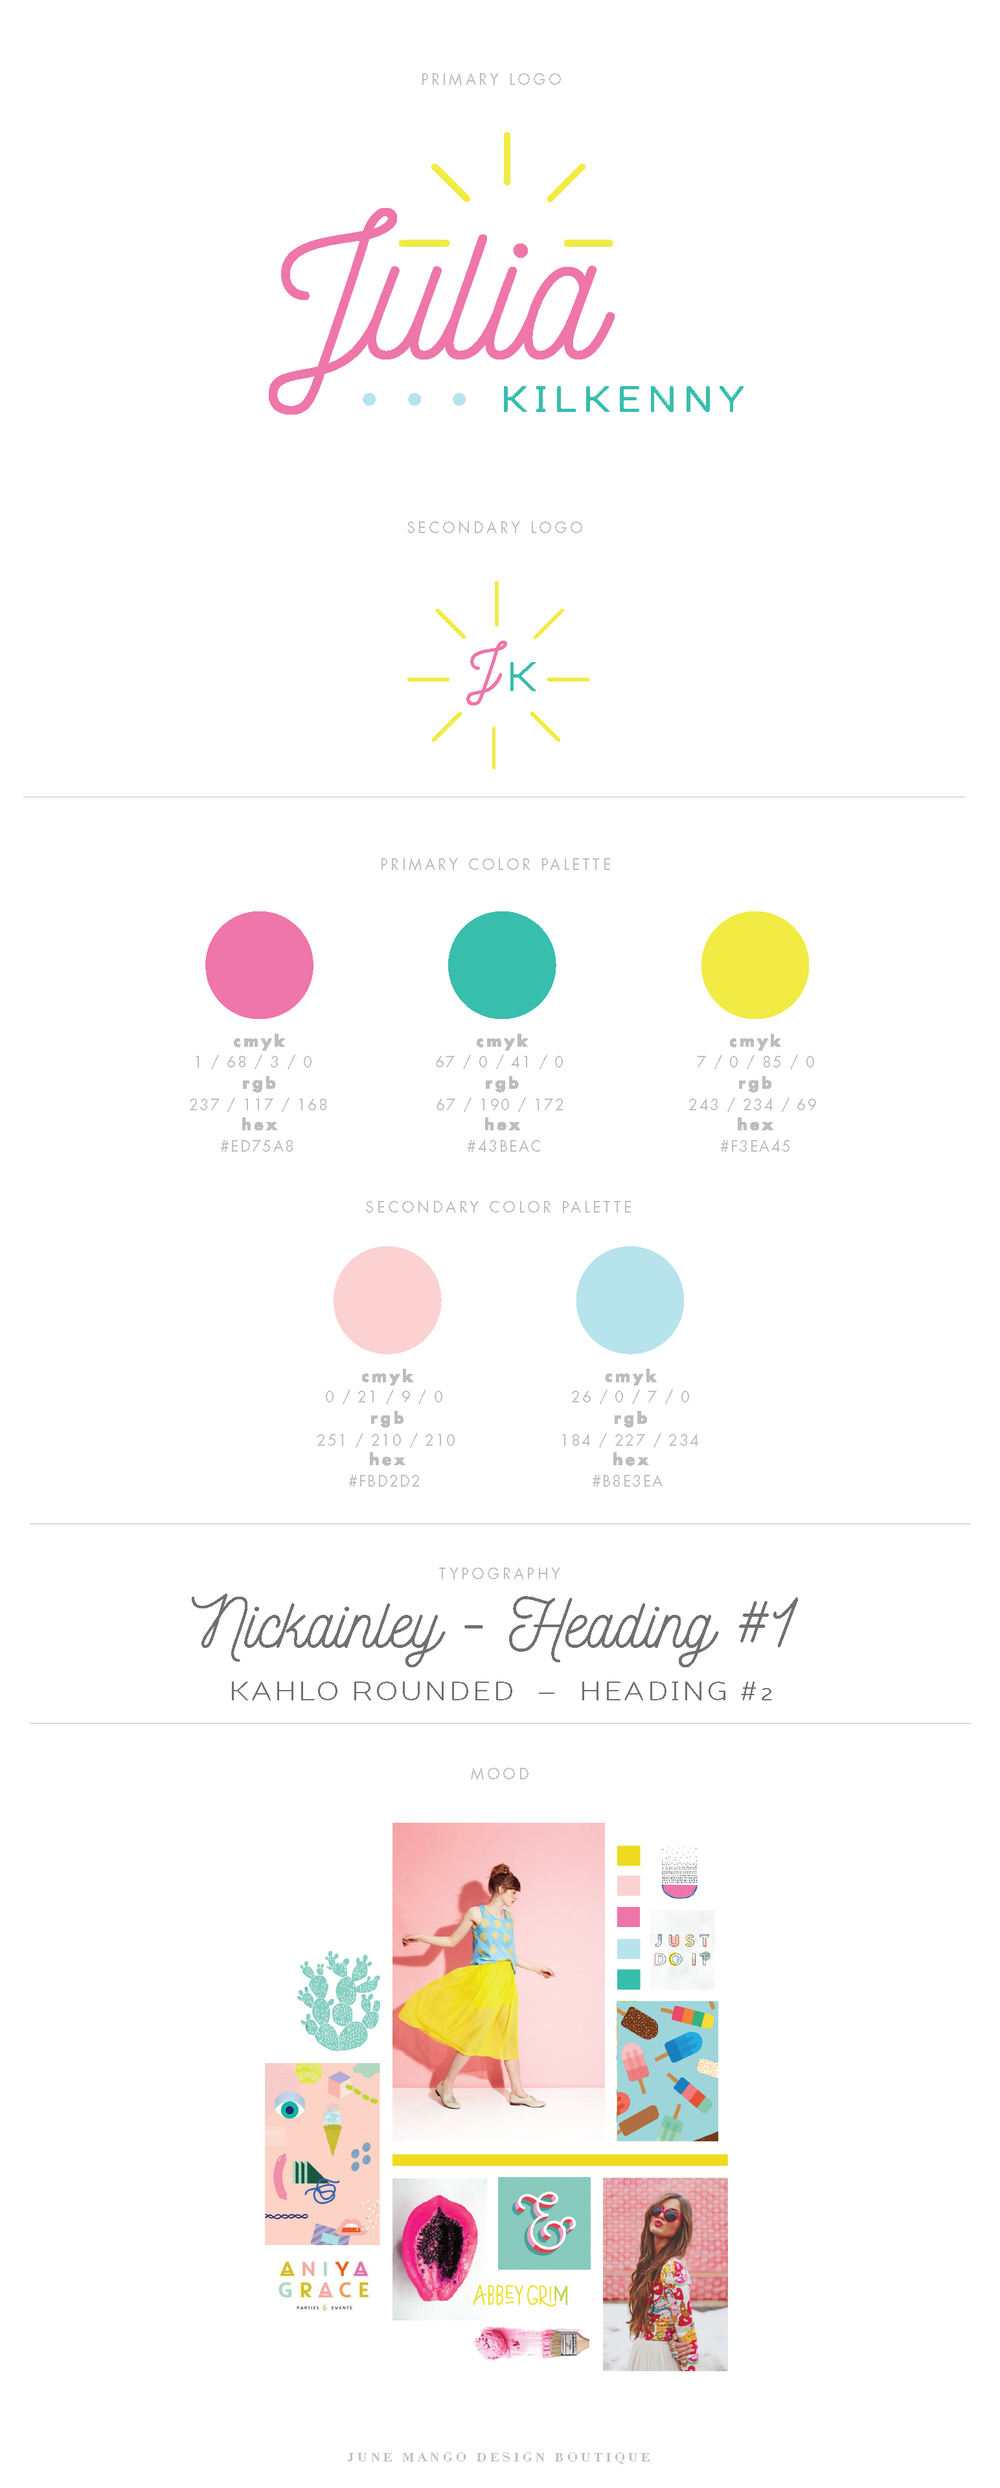 julia-kilkenny-brand-coaching-logo-bright-colorful.png